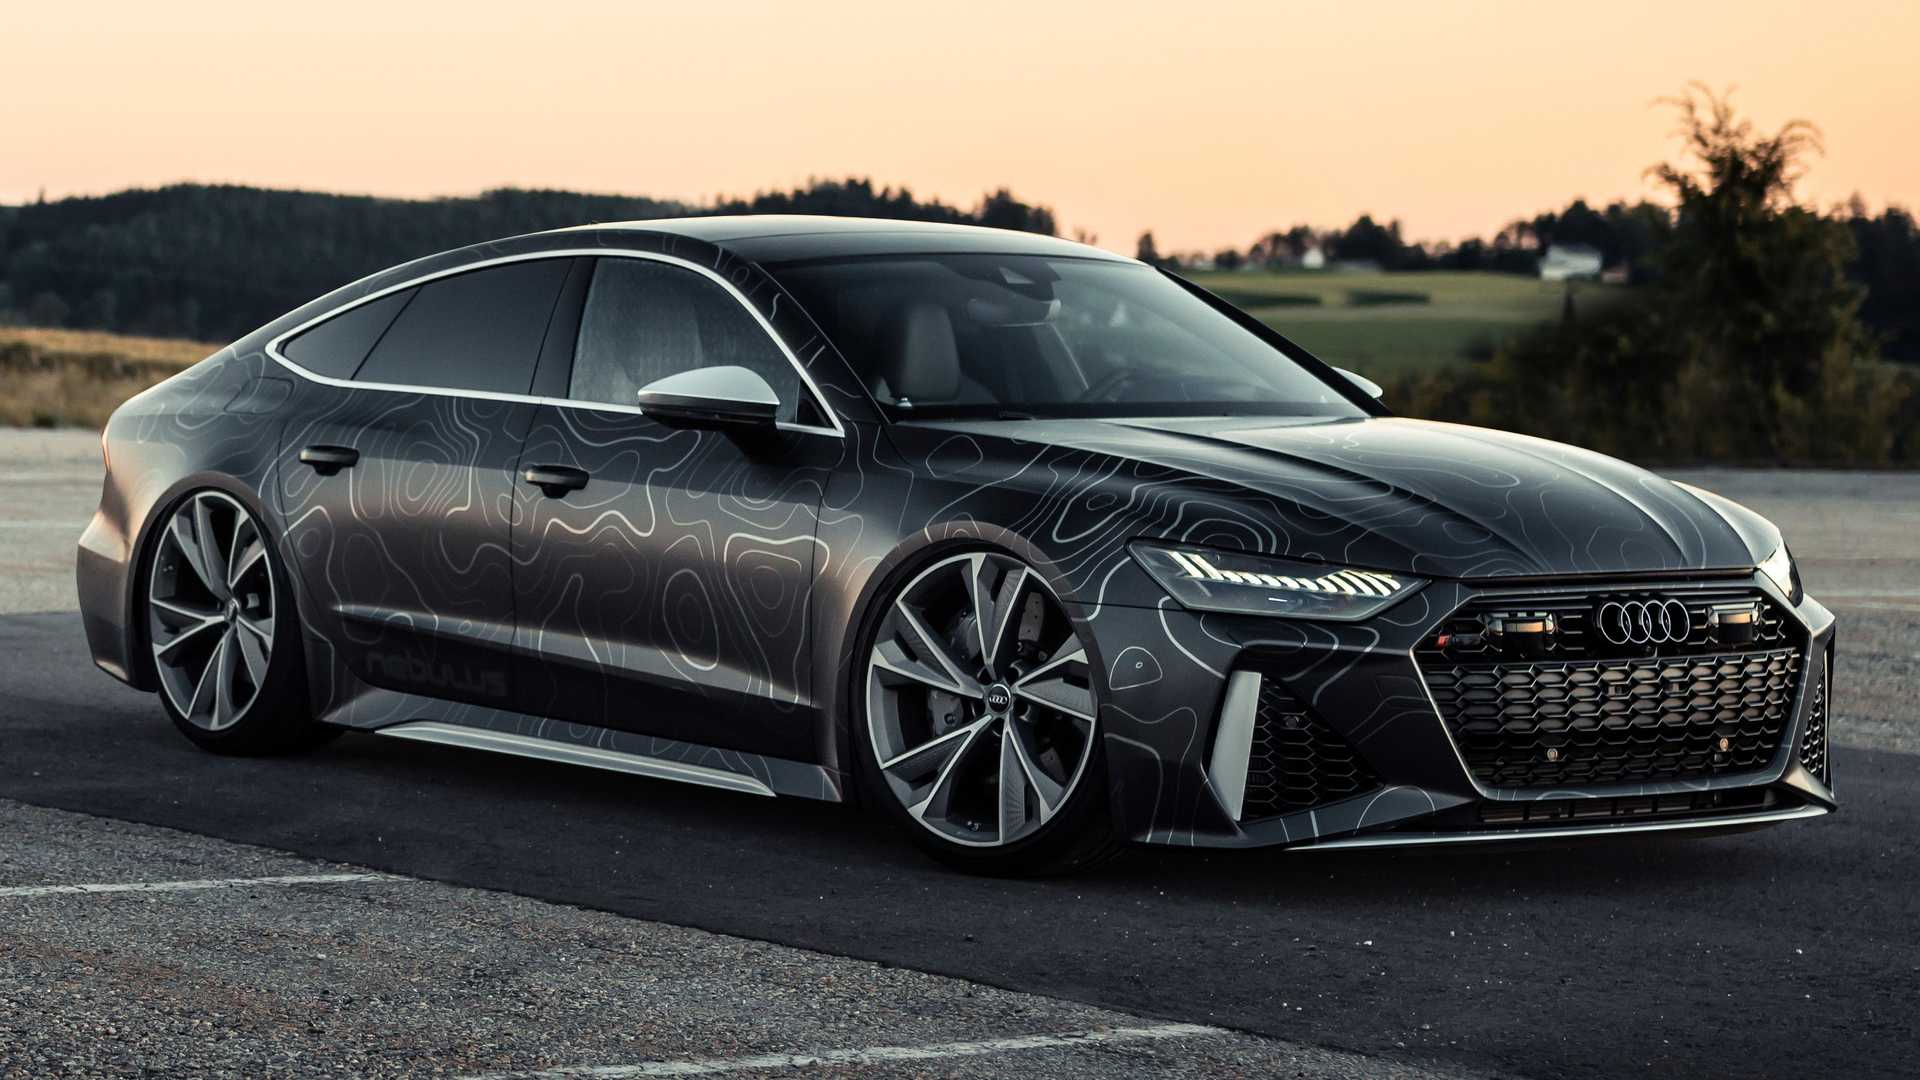 2020 Audi Rs7 Gets 962 Horsepower And Funky Wrap From Tuner